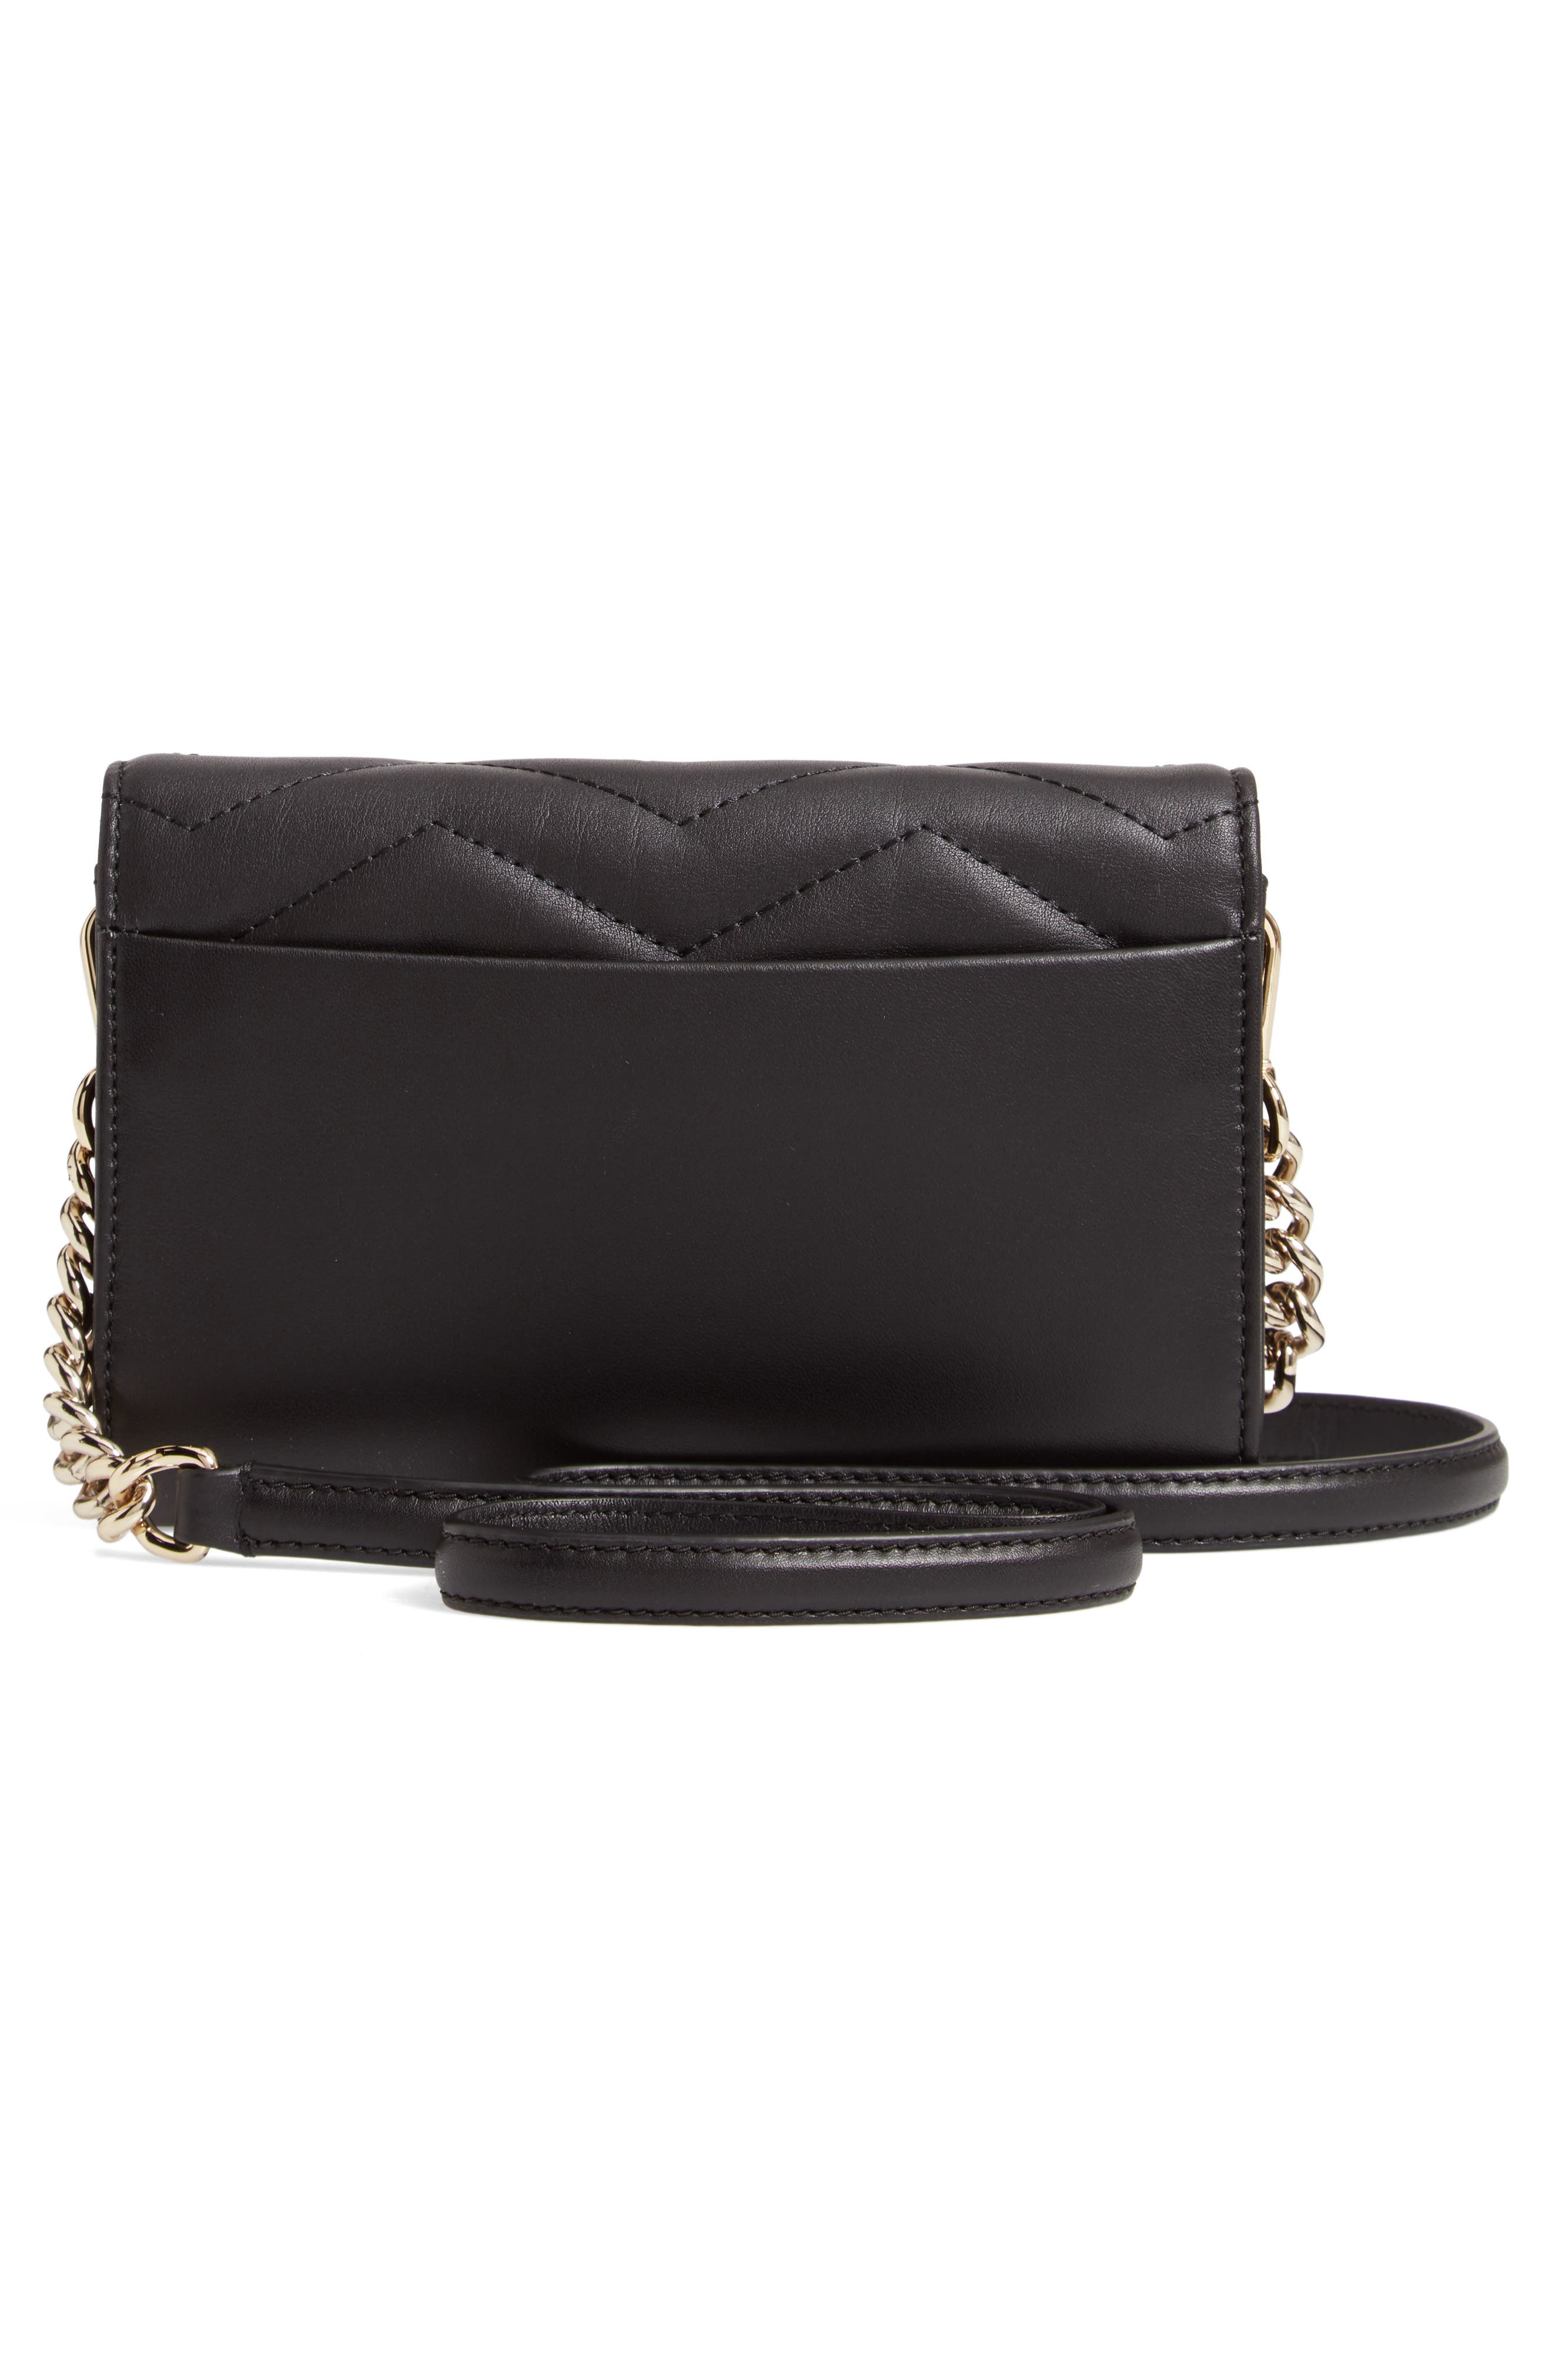 reese park – wyn quilted leather crossbody,                             Alternate thumbnail 3, color,                             BLACK